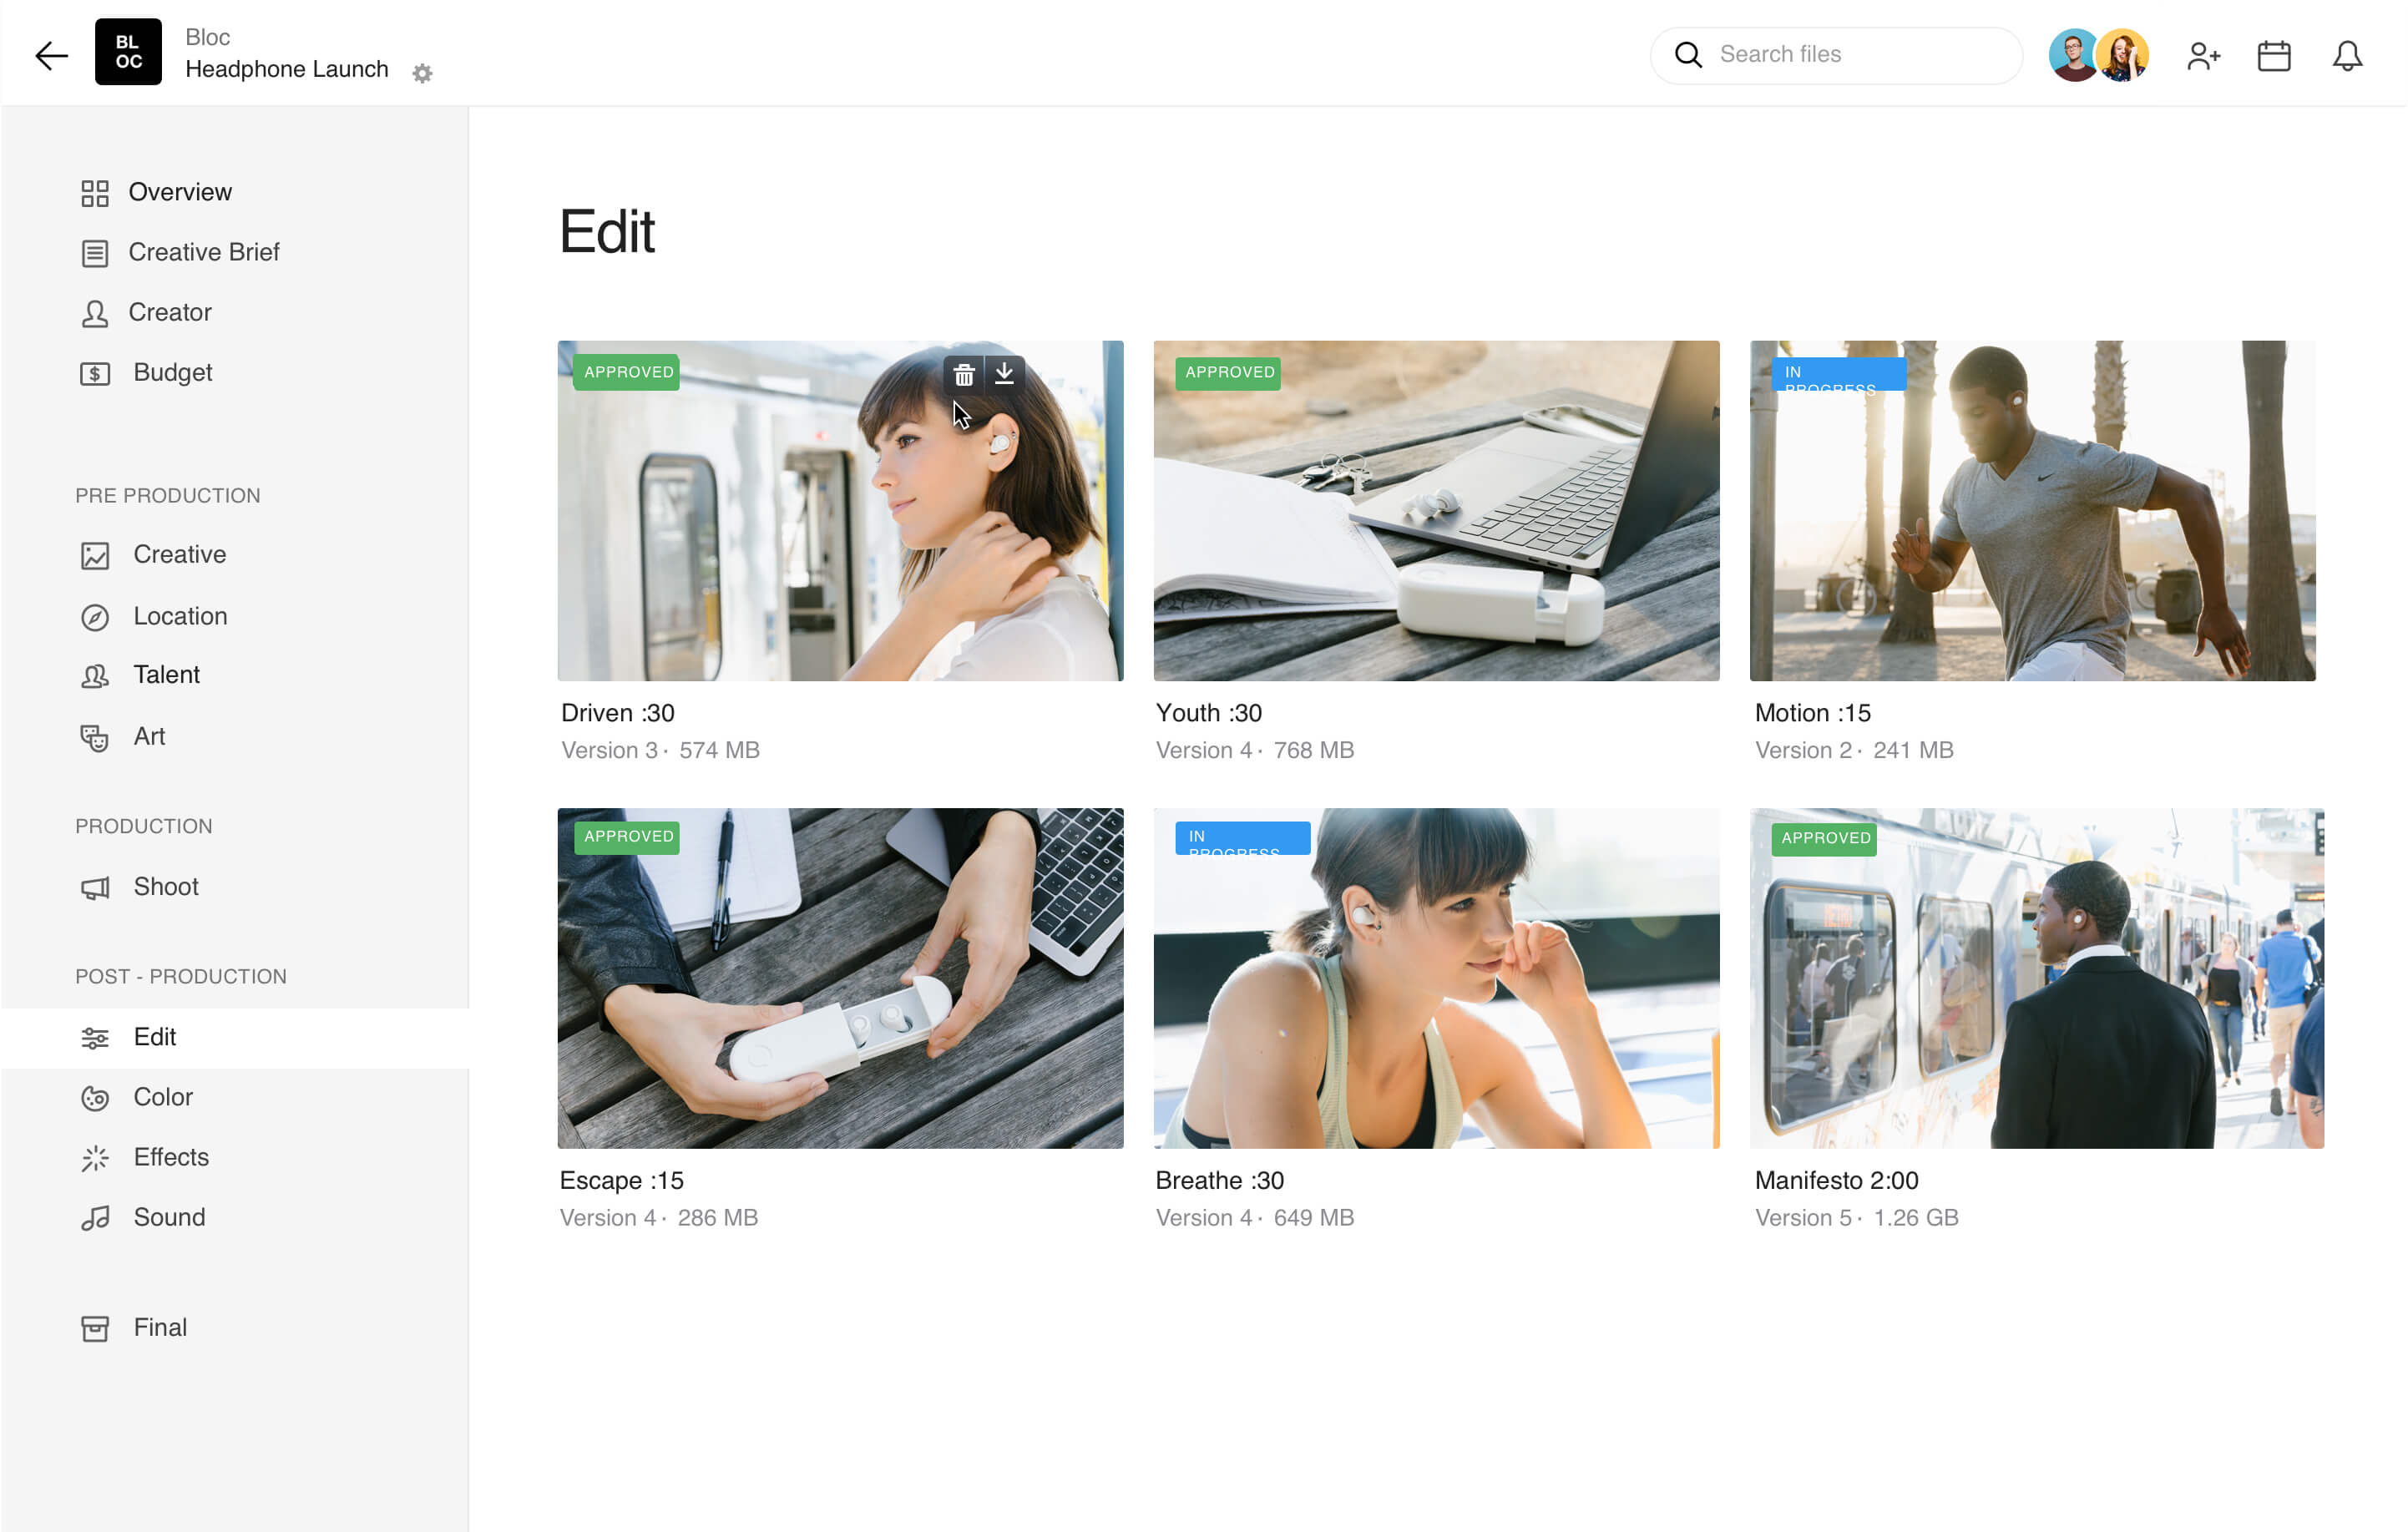 Organize and archive all of your video and photo files.